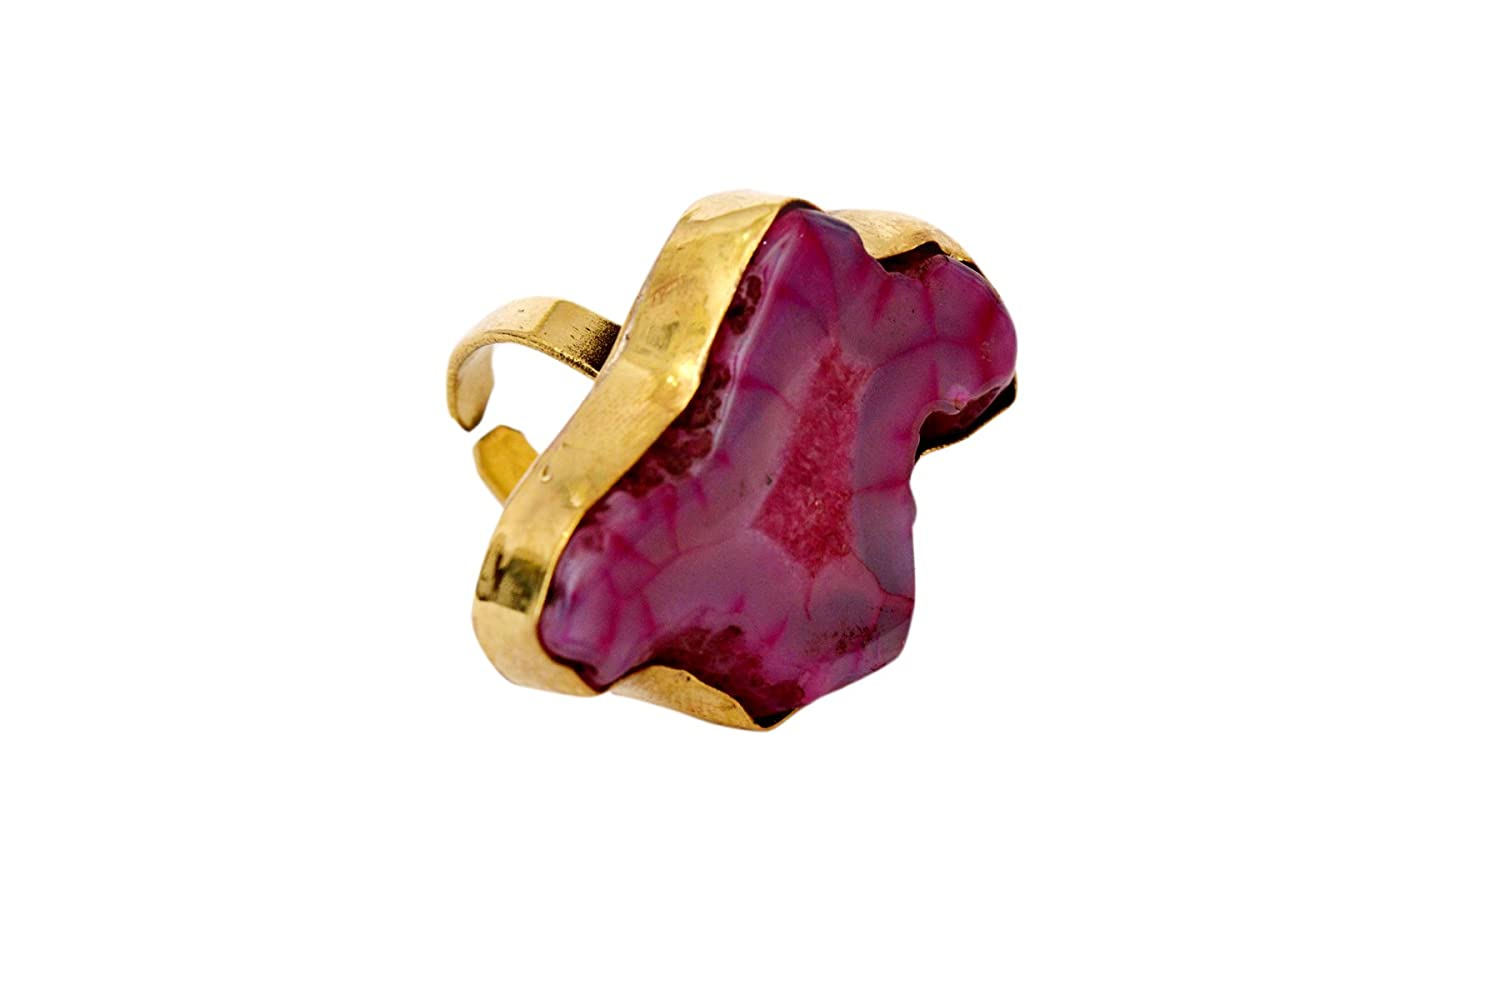 JD/&JD Adjustable Gold Plated Geode Agate Pink Druzy Ring Jewelry KE1207